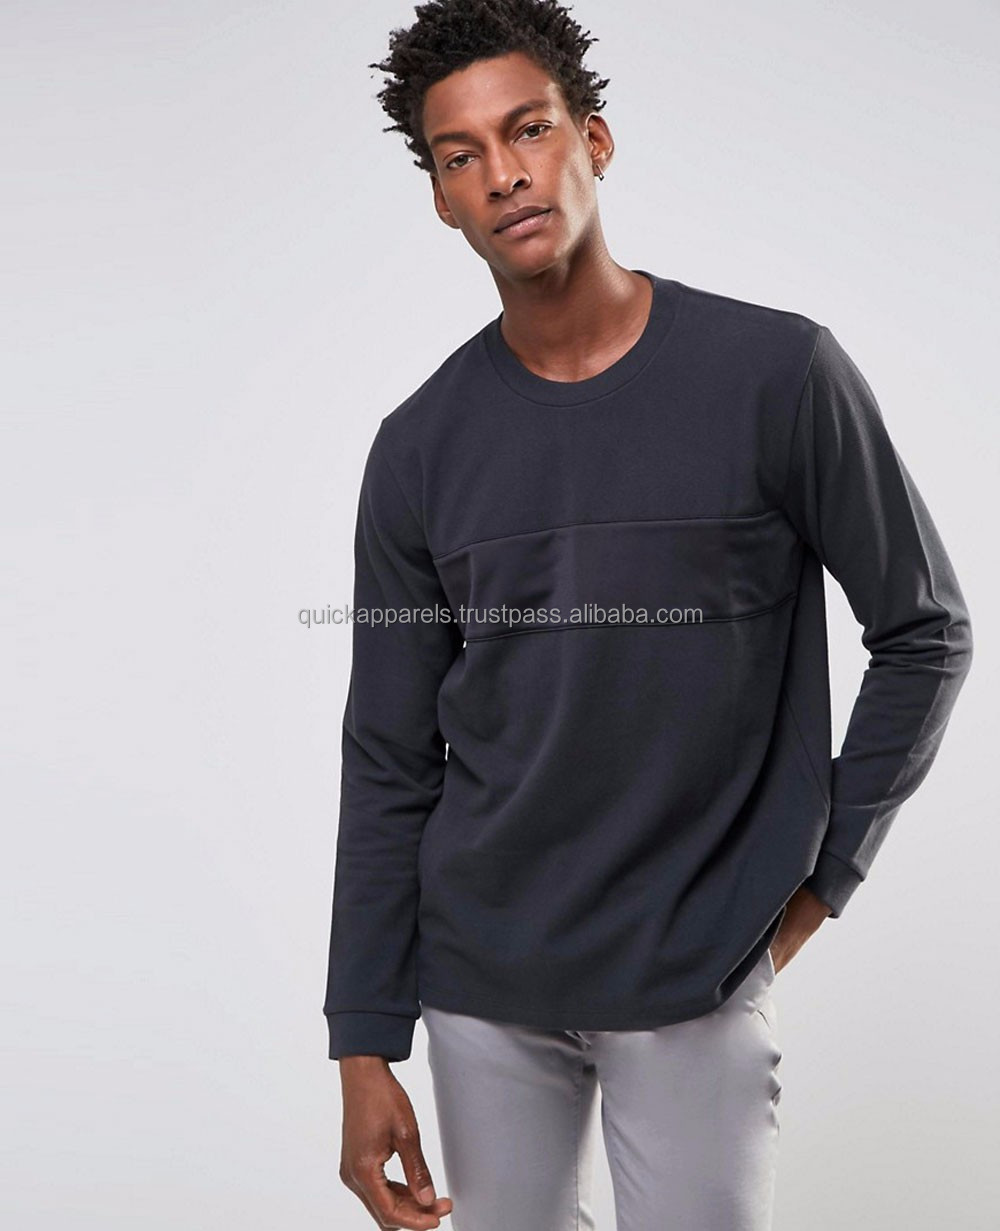 Mens cotton long sleeve t shirt with discharge print, stone wash tshirt, black color